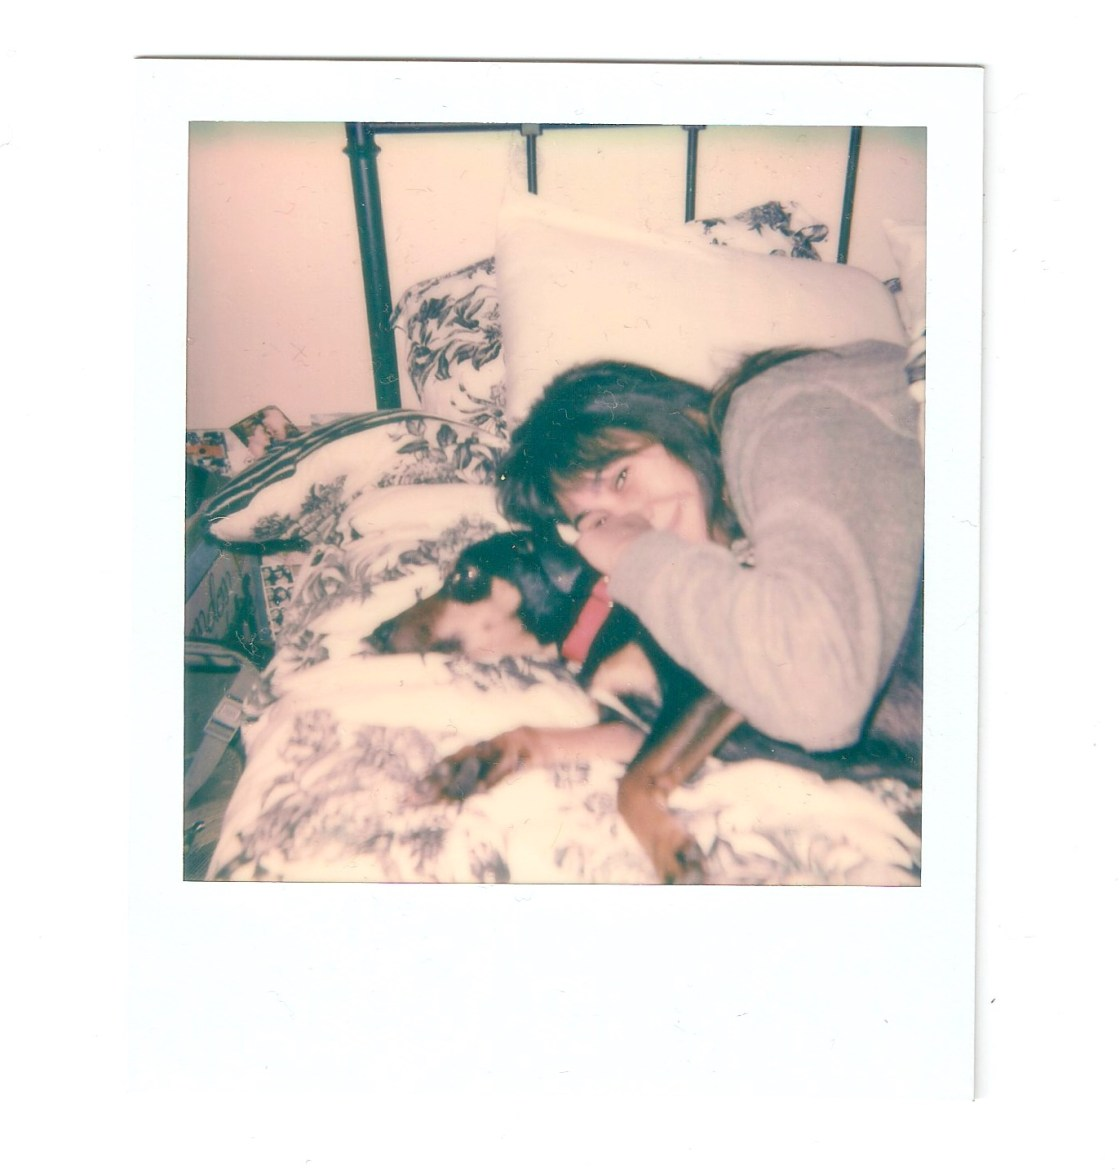 The white framed polaroid photo features a girl laying on a bed with a dog